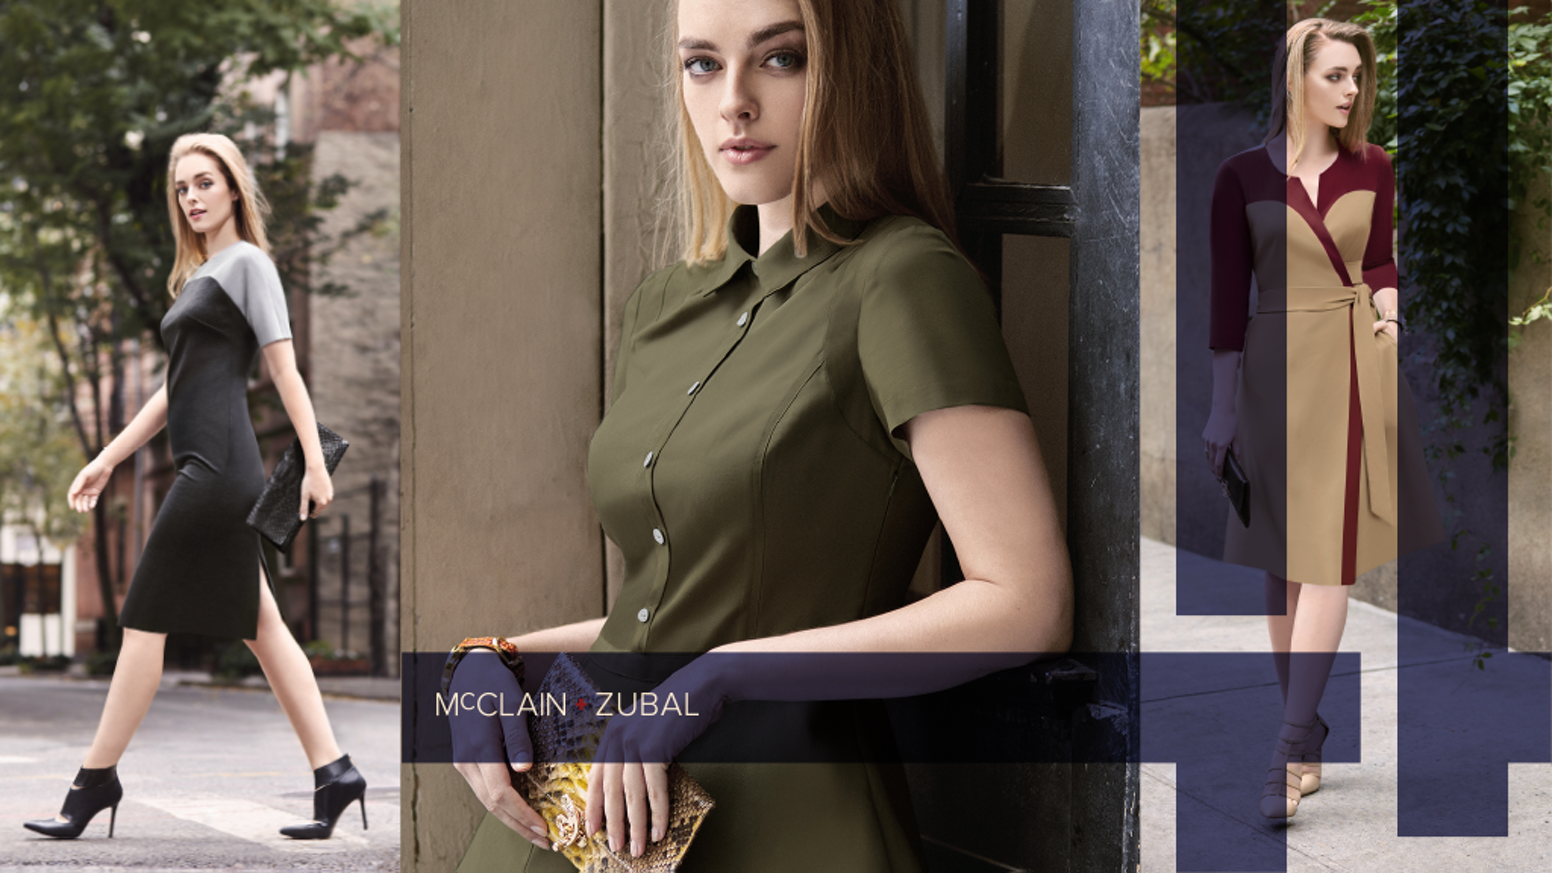 Modest Dress Png - McClain + Zubal Modest Dress Collection by Curtis McClain + Nate ...